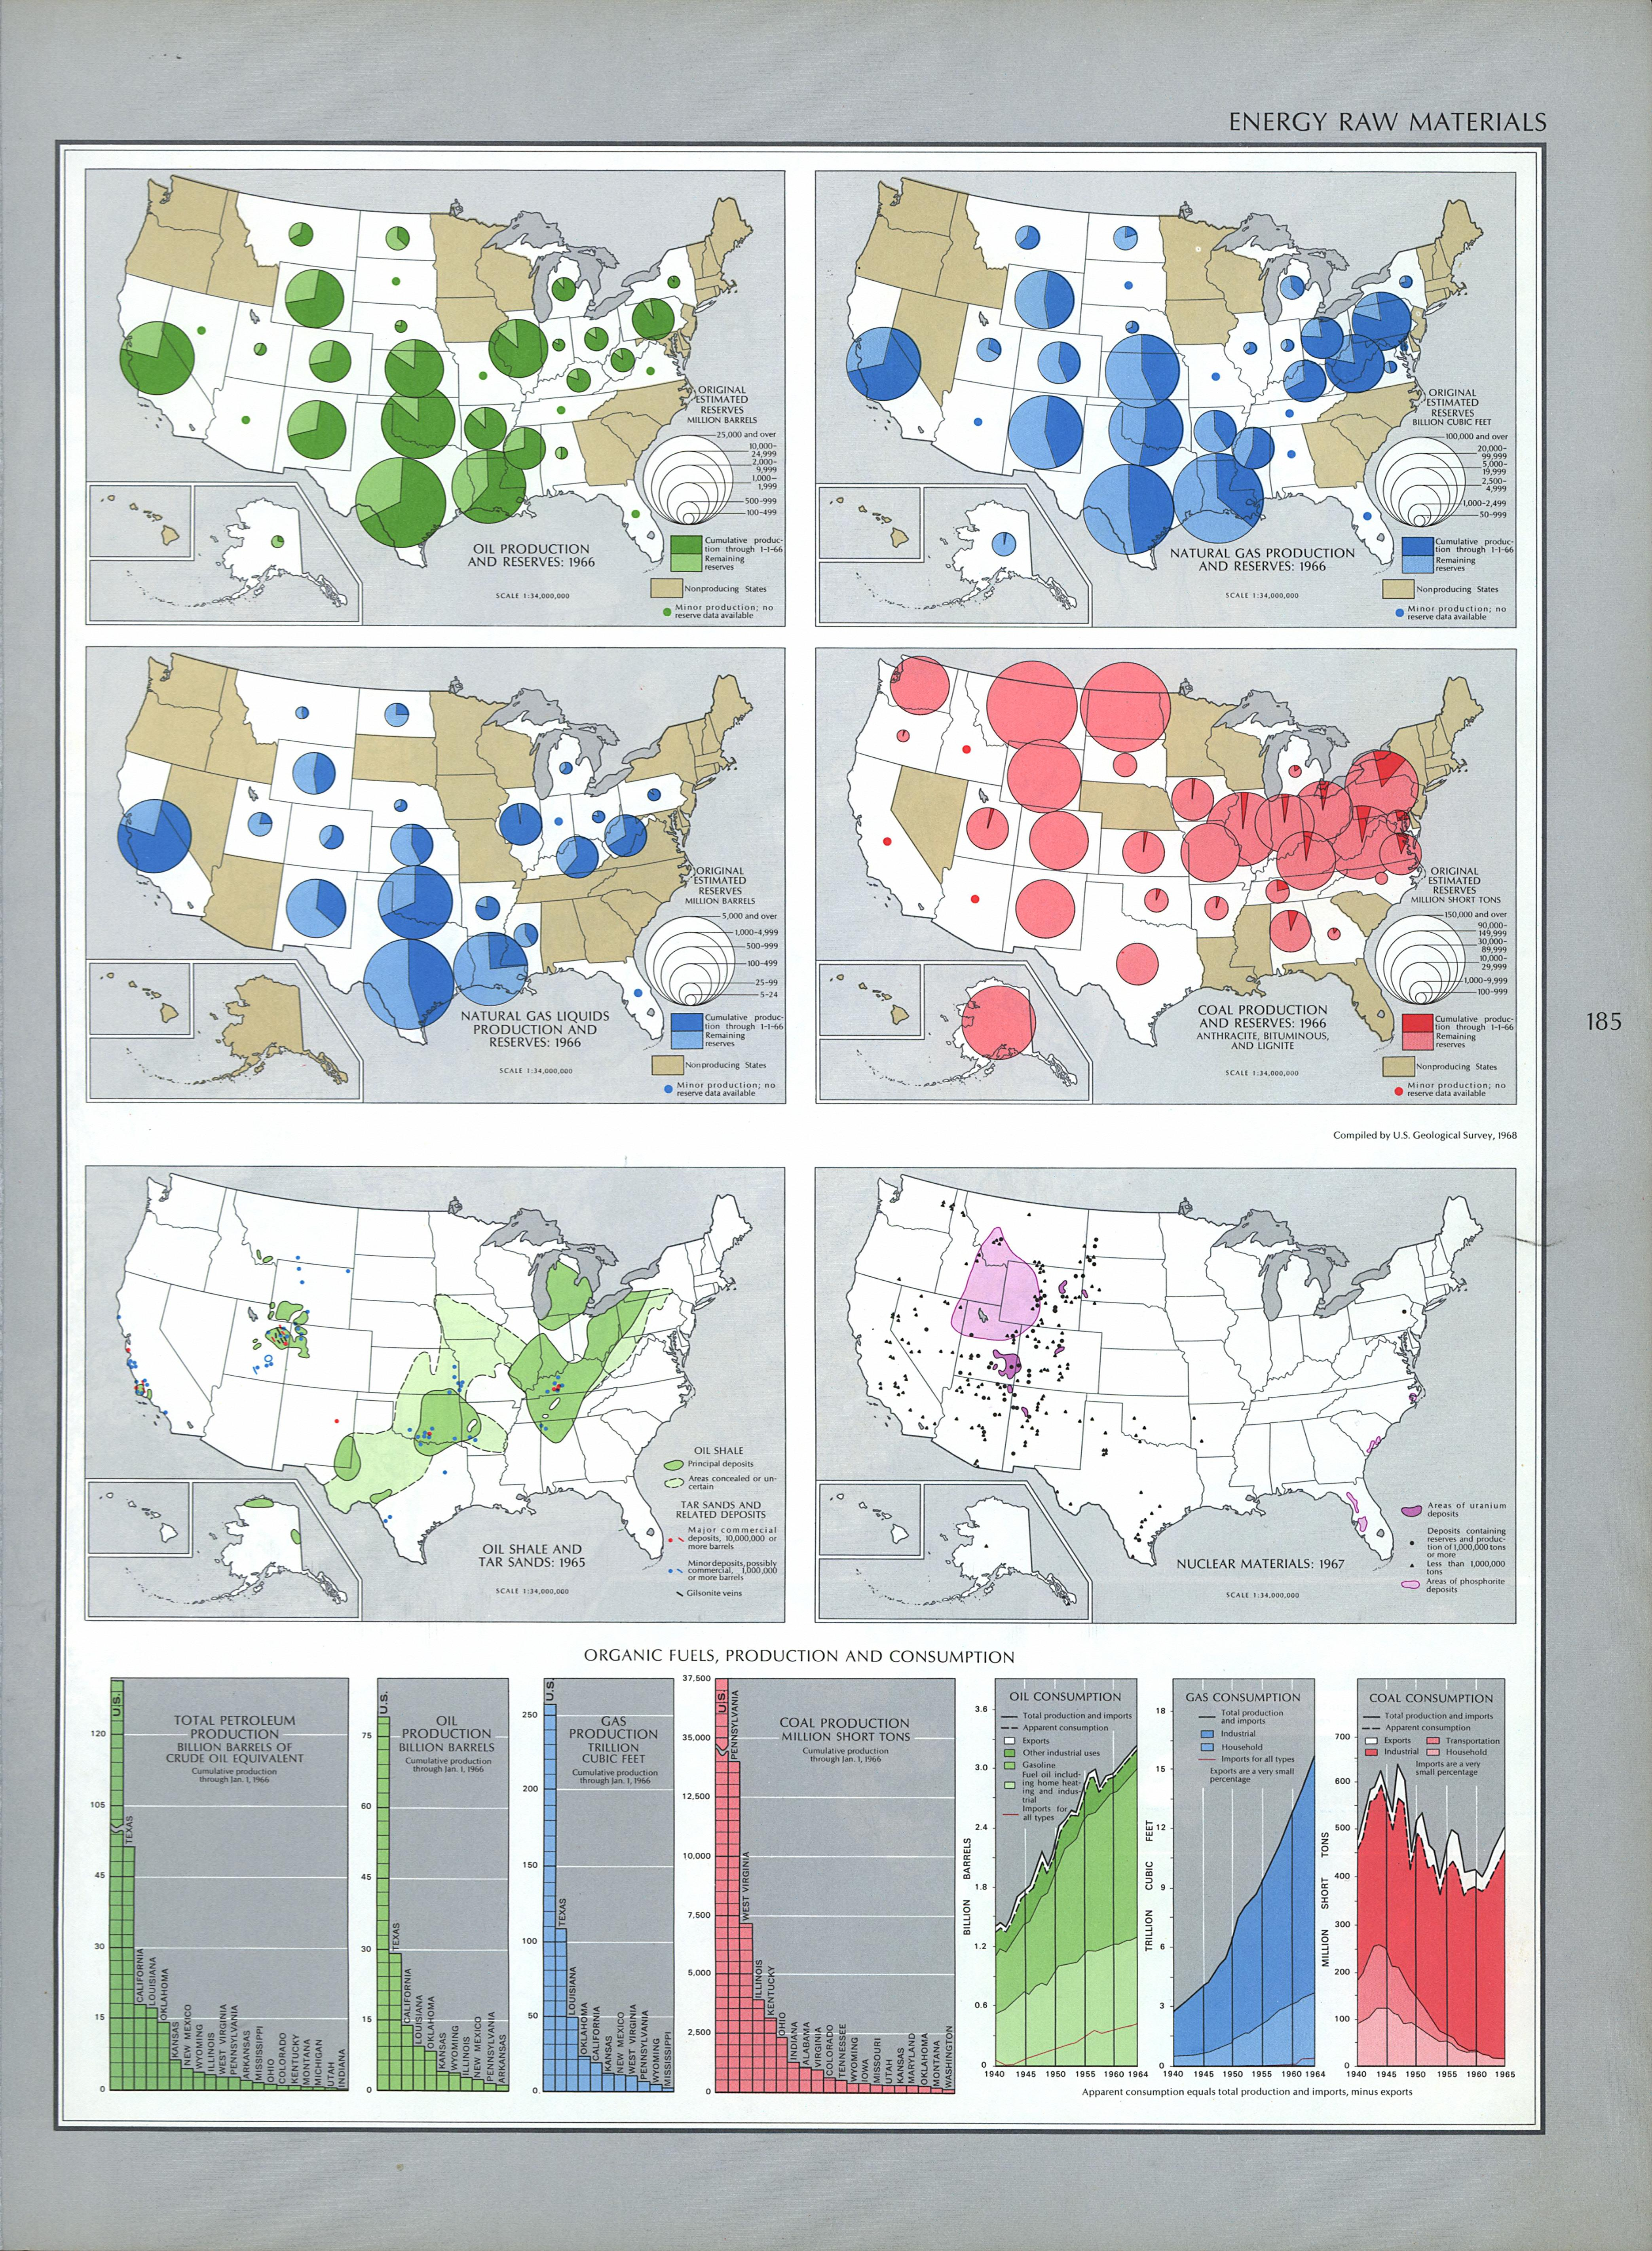 United States Energy Raw Materials Map